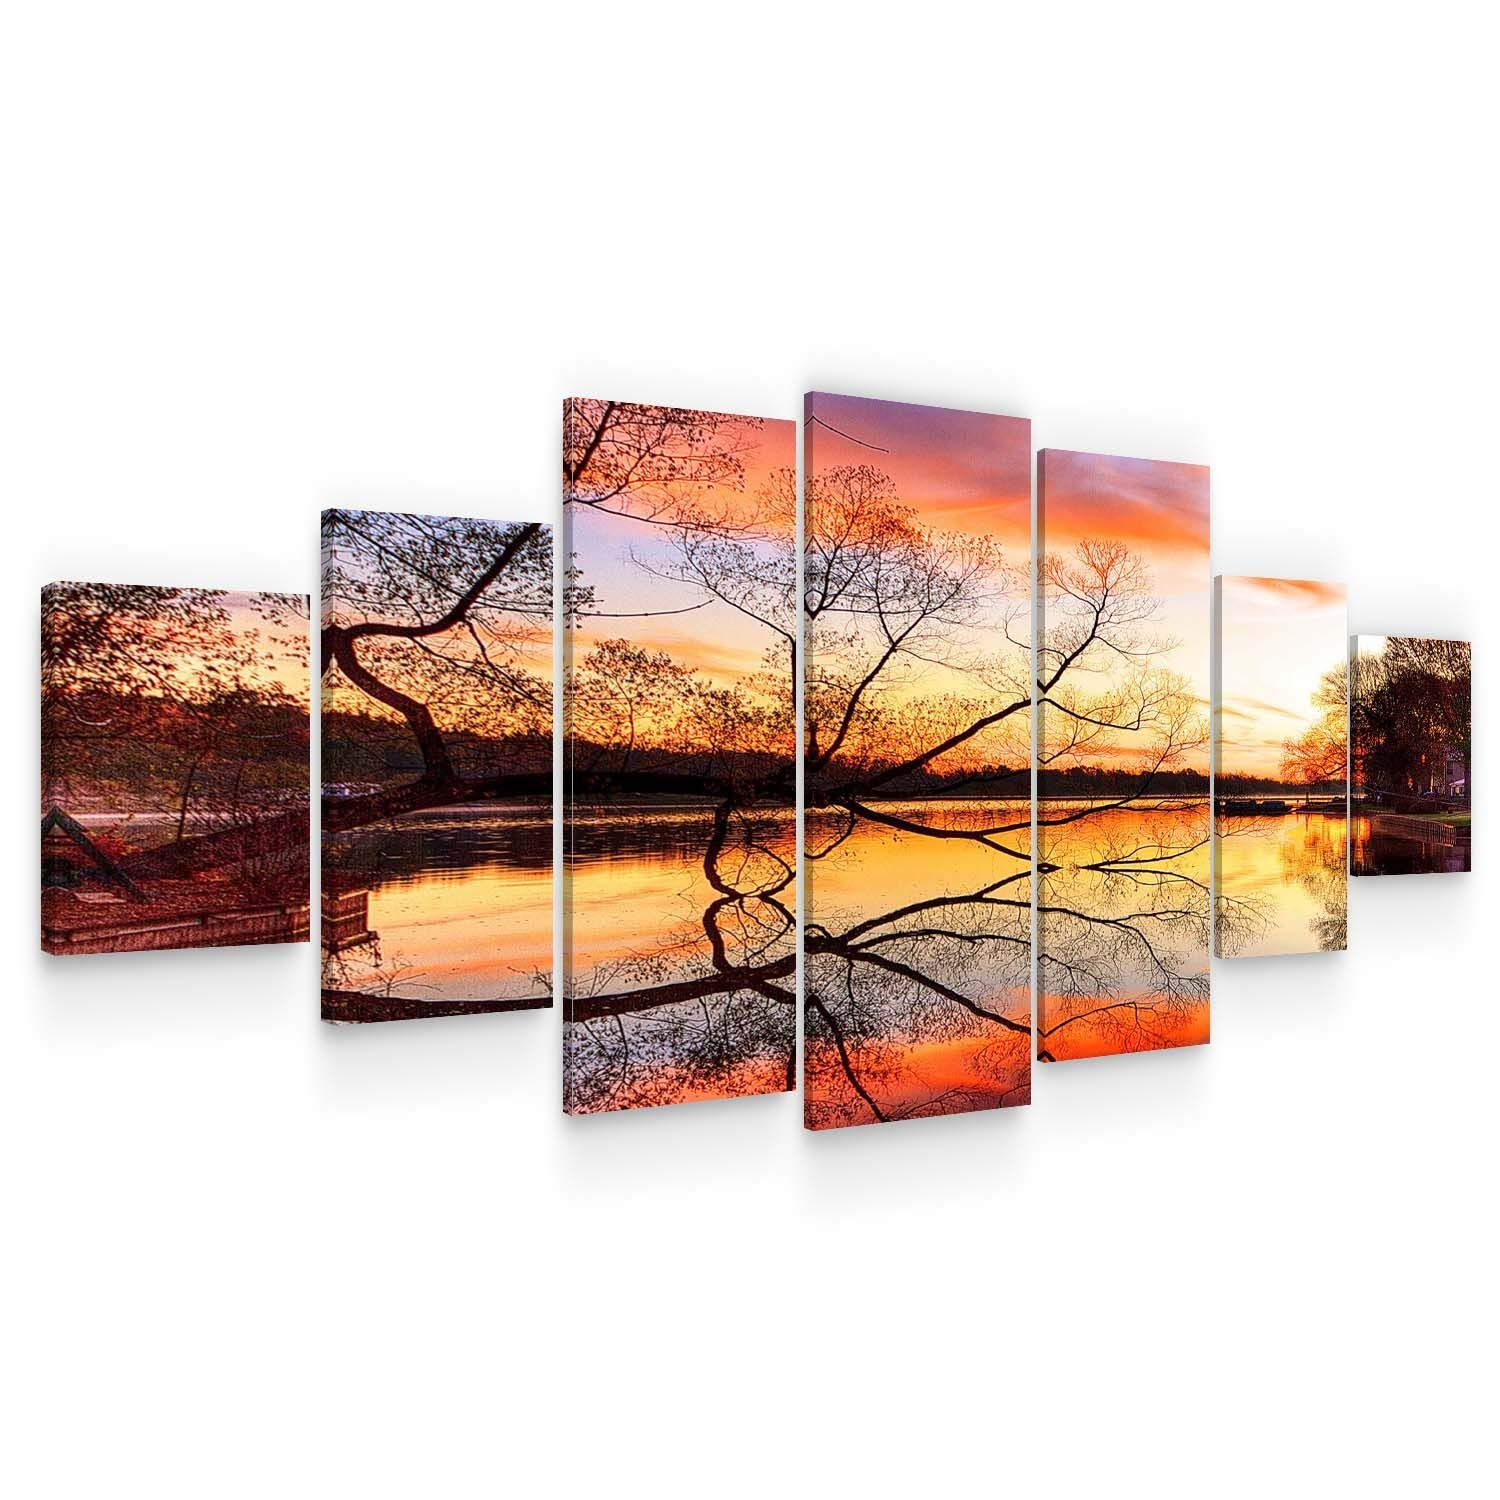 Startonight Huge Canvas Wall Art Gold Sunset On The Lake - Large Framed Set of 7 40 x 95 Inches